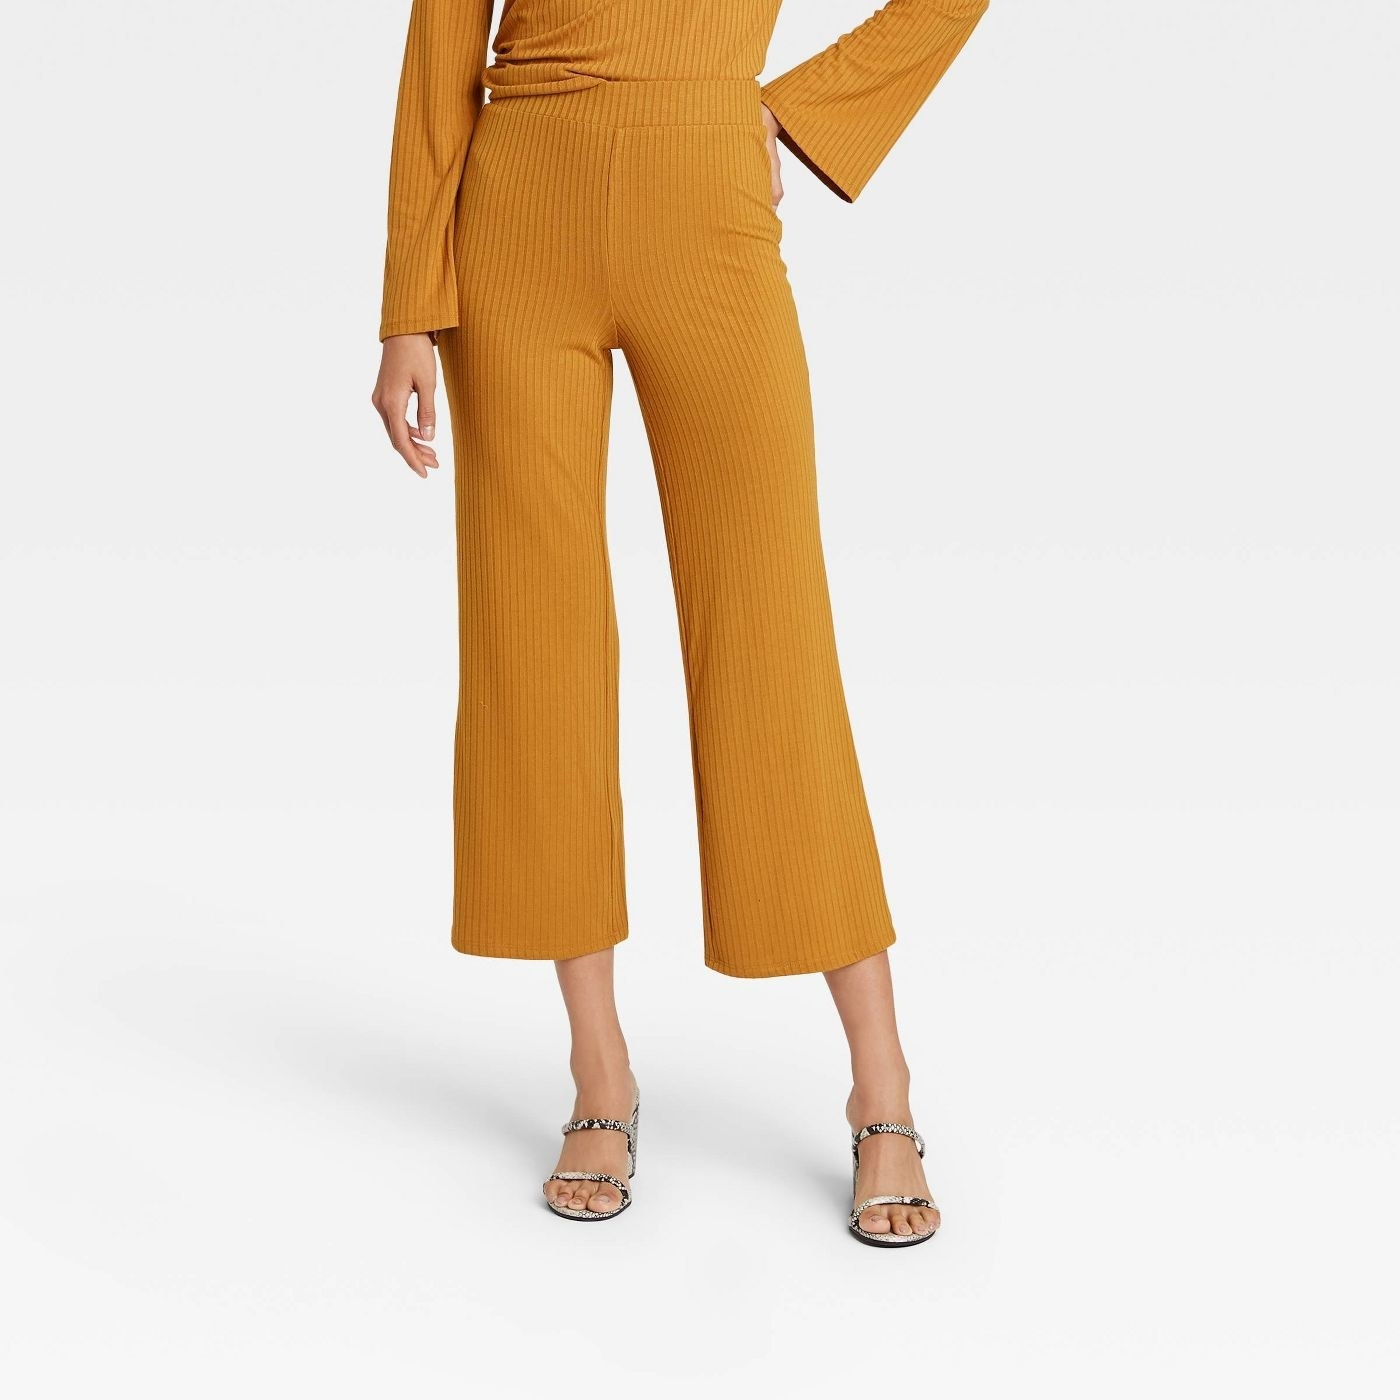 Model in yellow high-rise wide leg pants